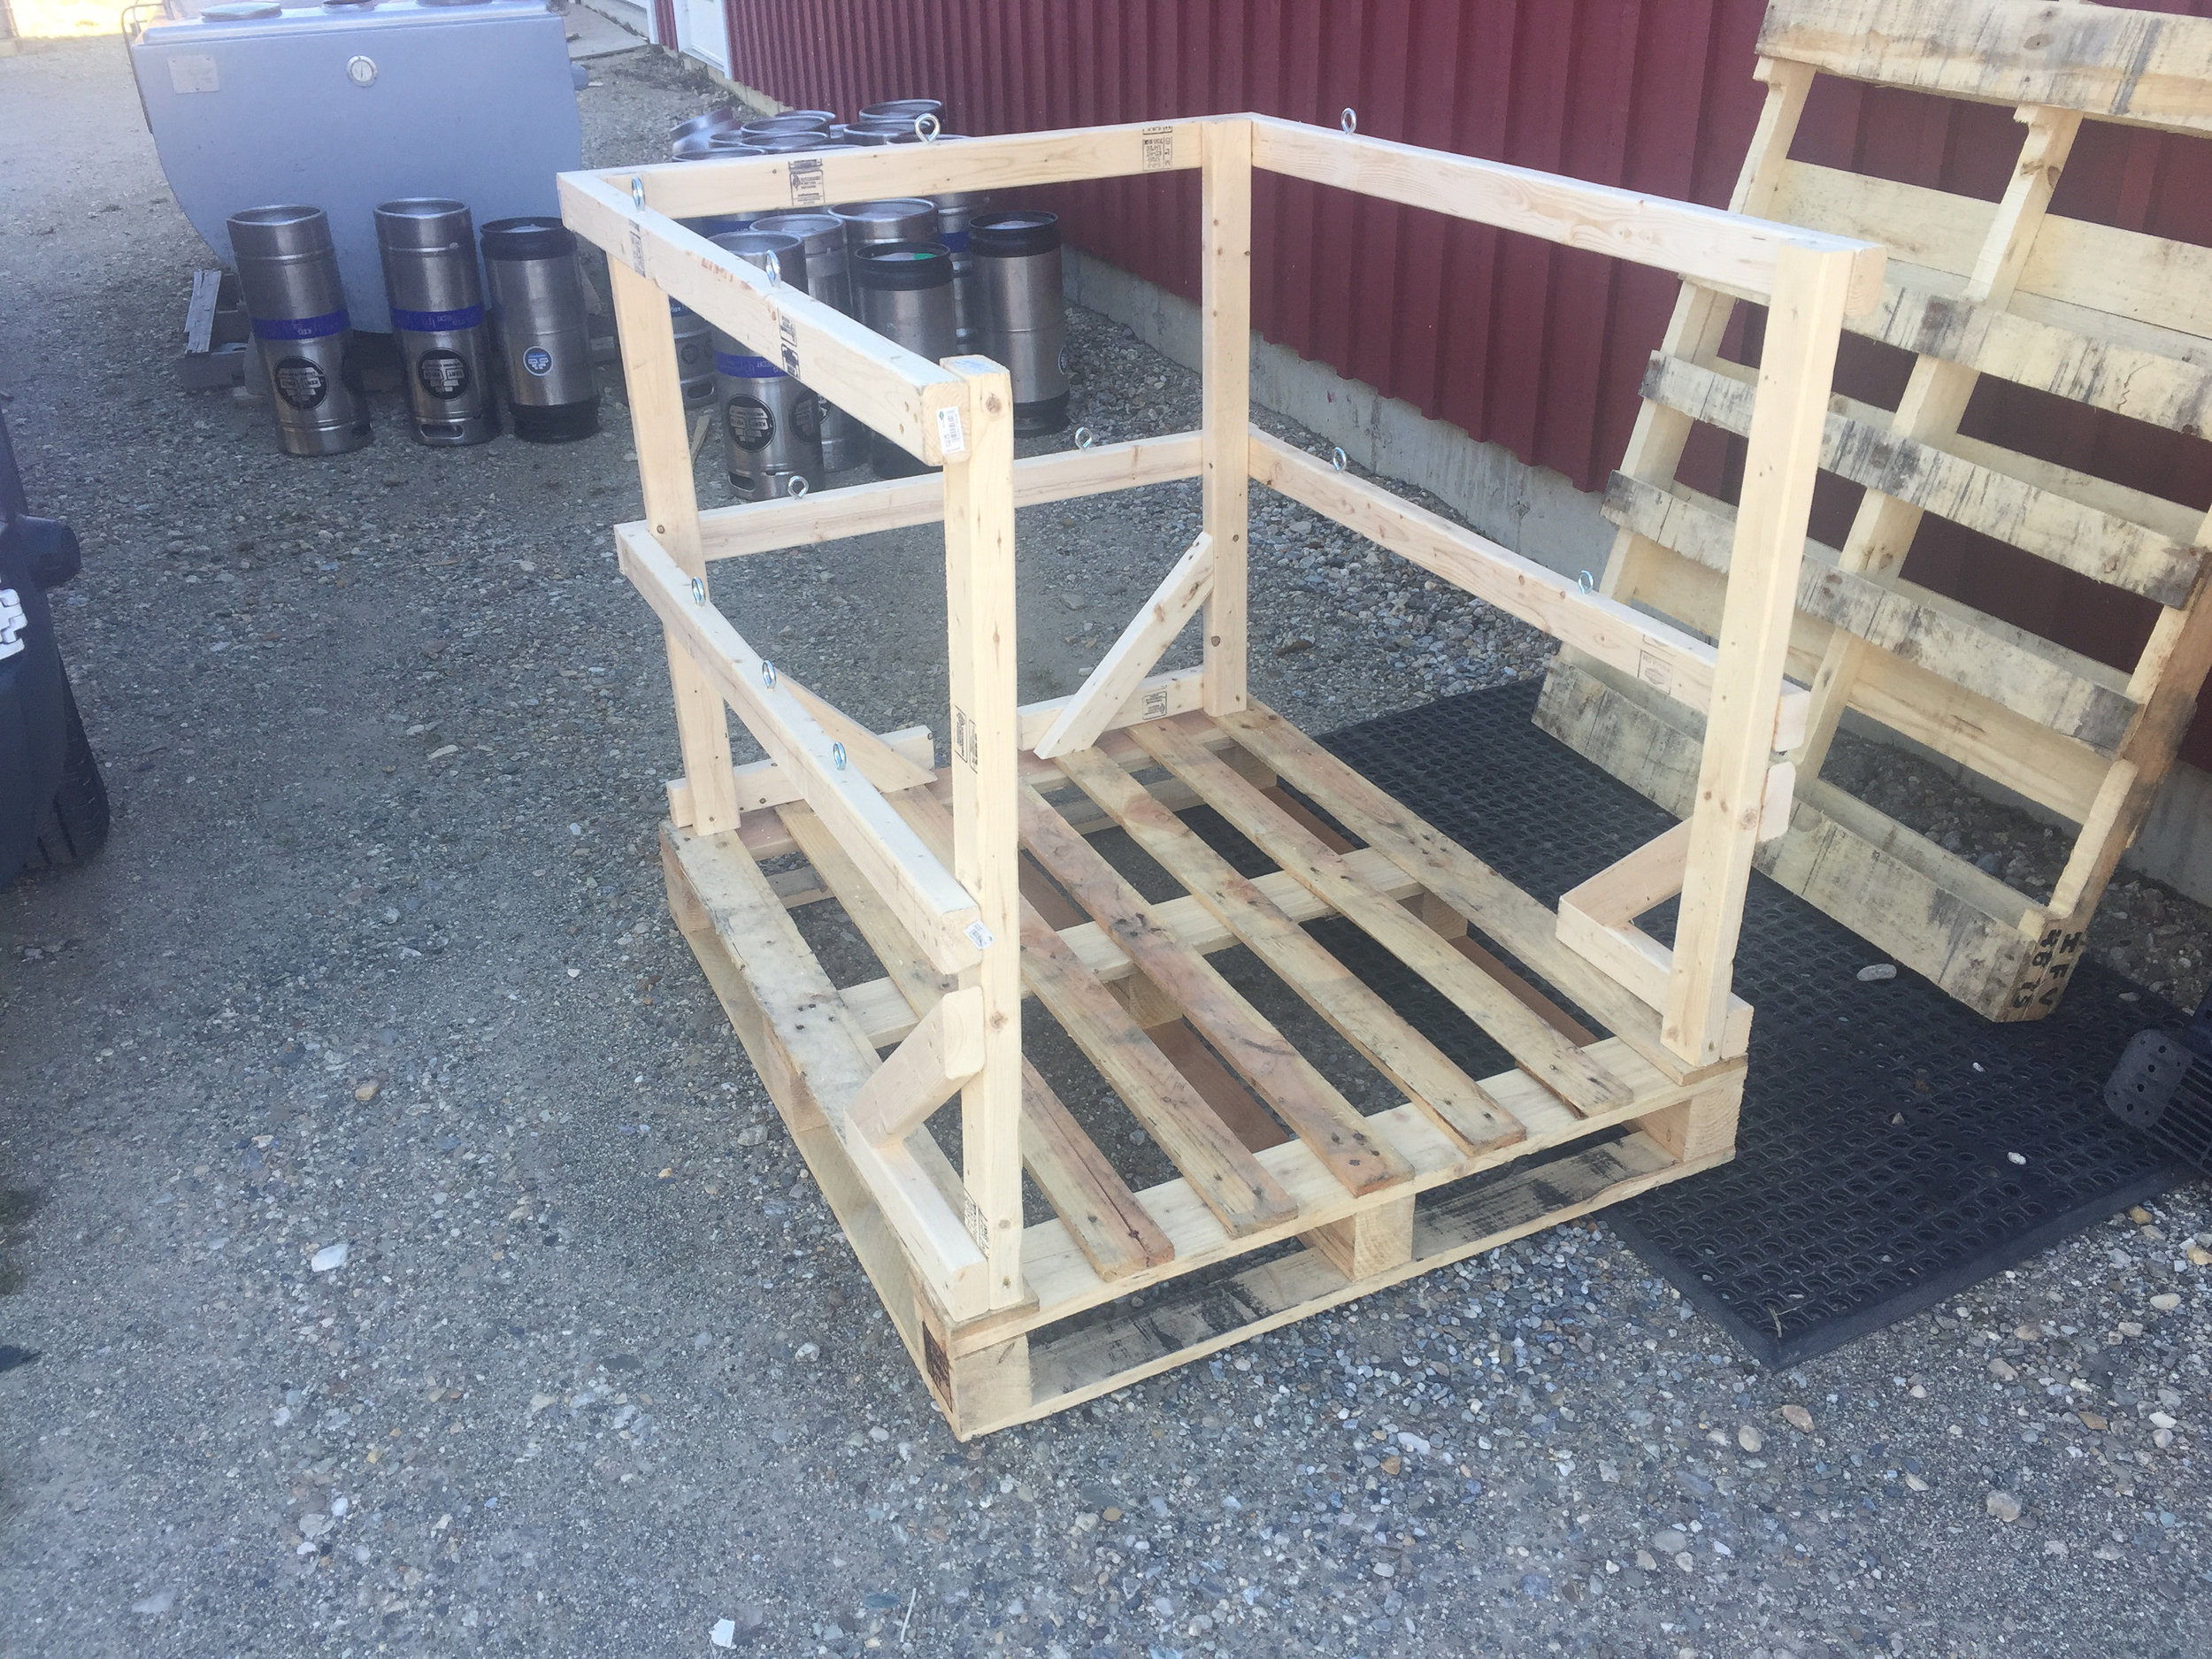 I also designed and built these handy dandy pallets for our beer delivery van.